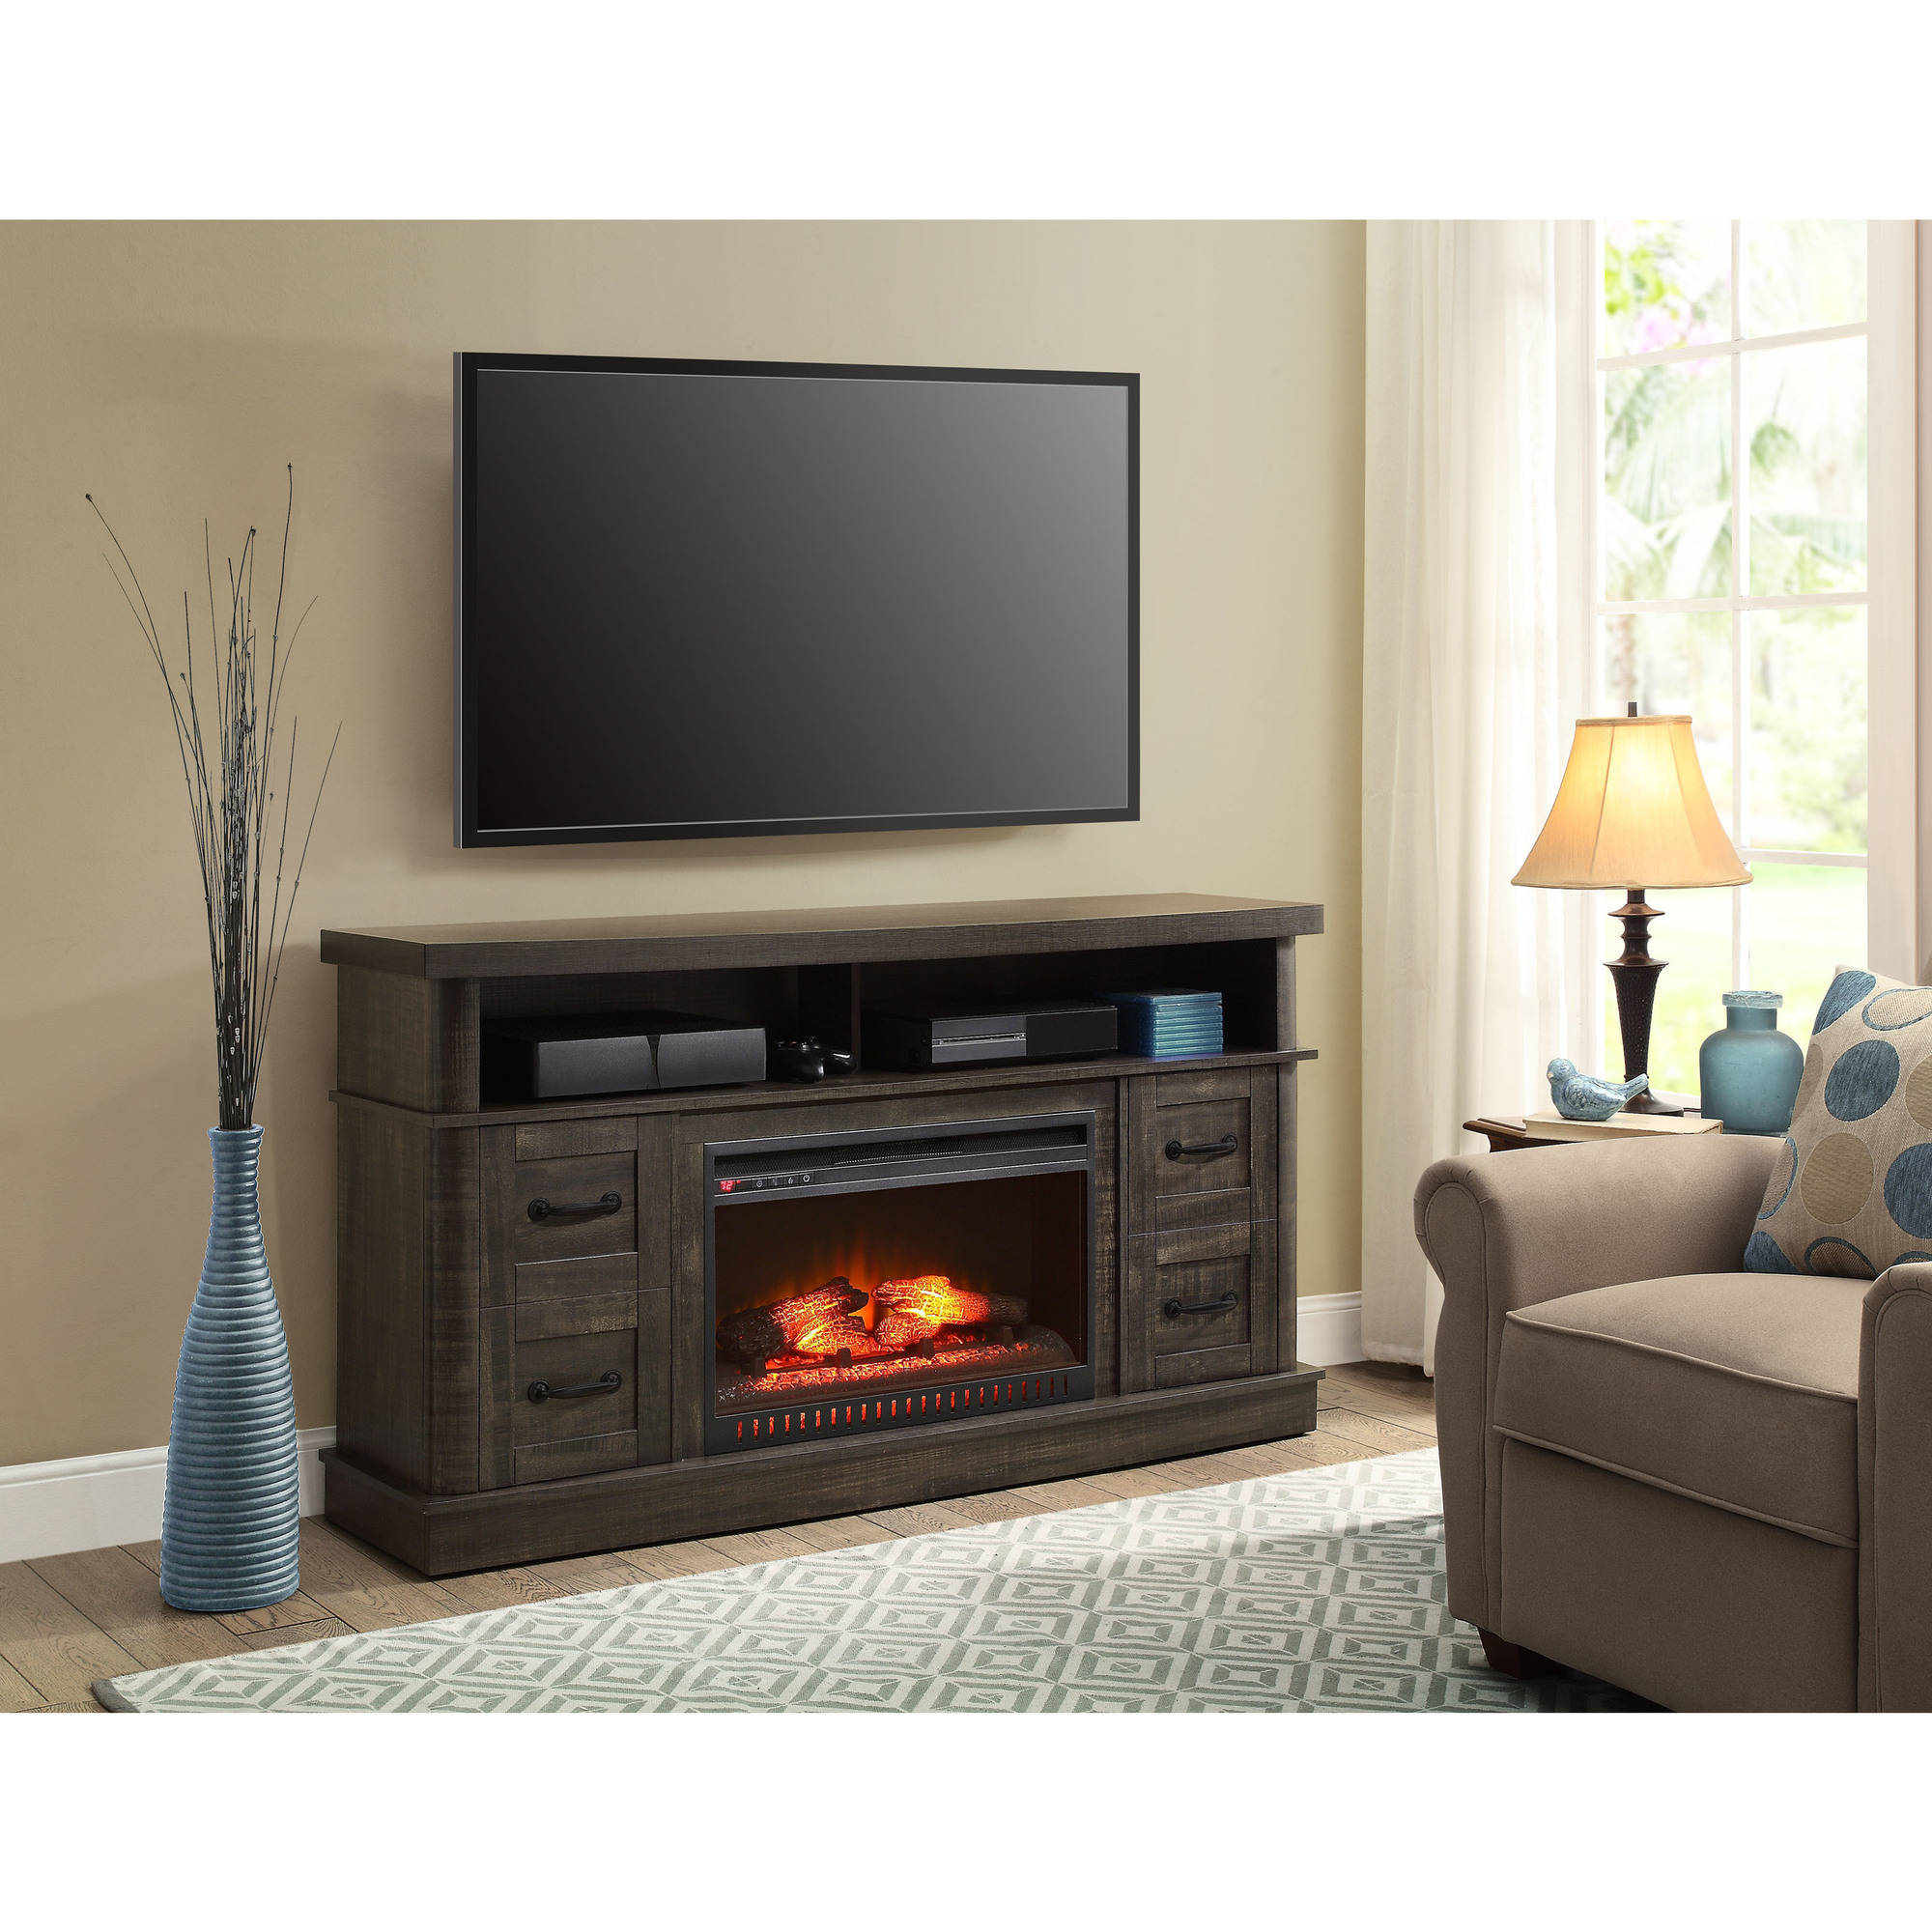 Whalen Weathered Dark Pine Media Fireplace Console for TVs